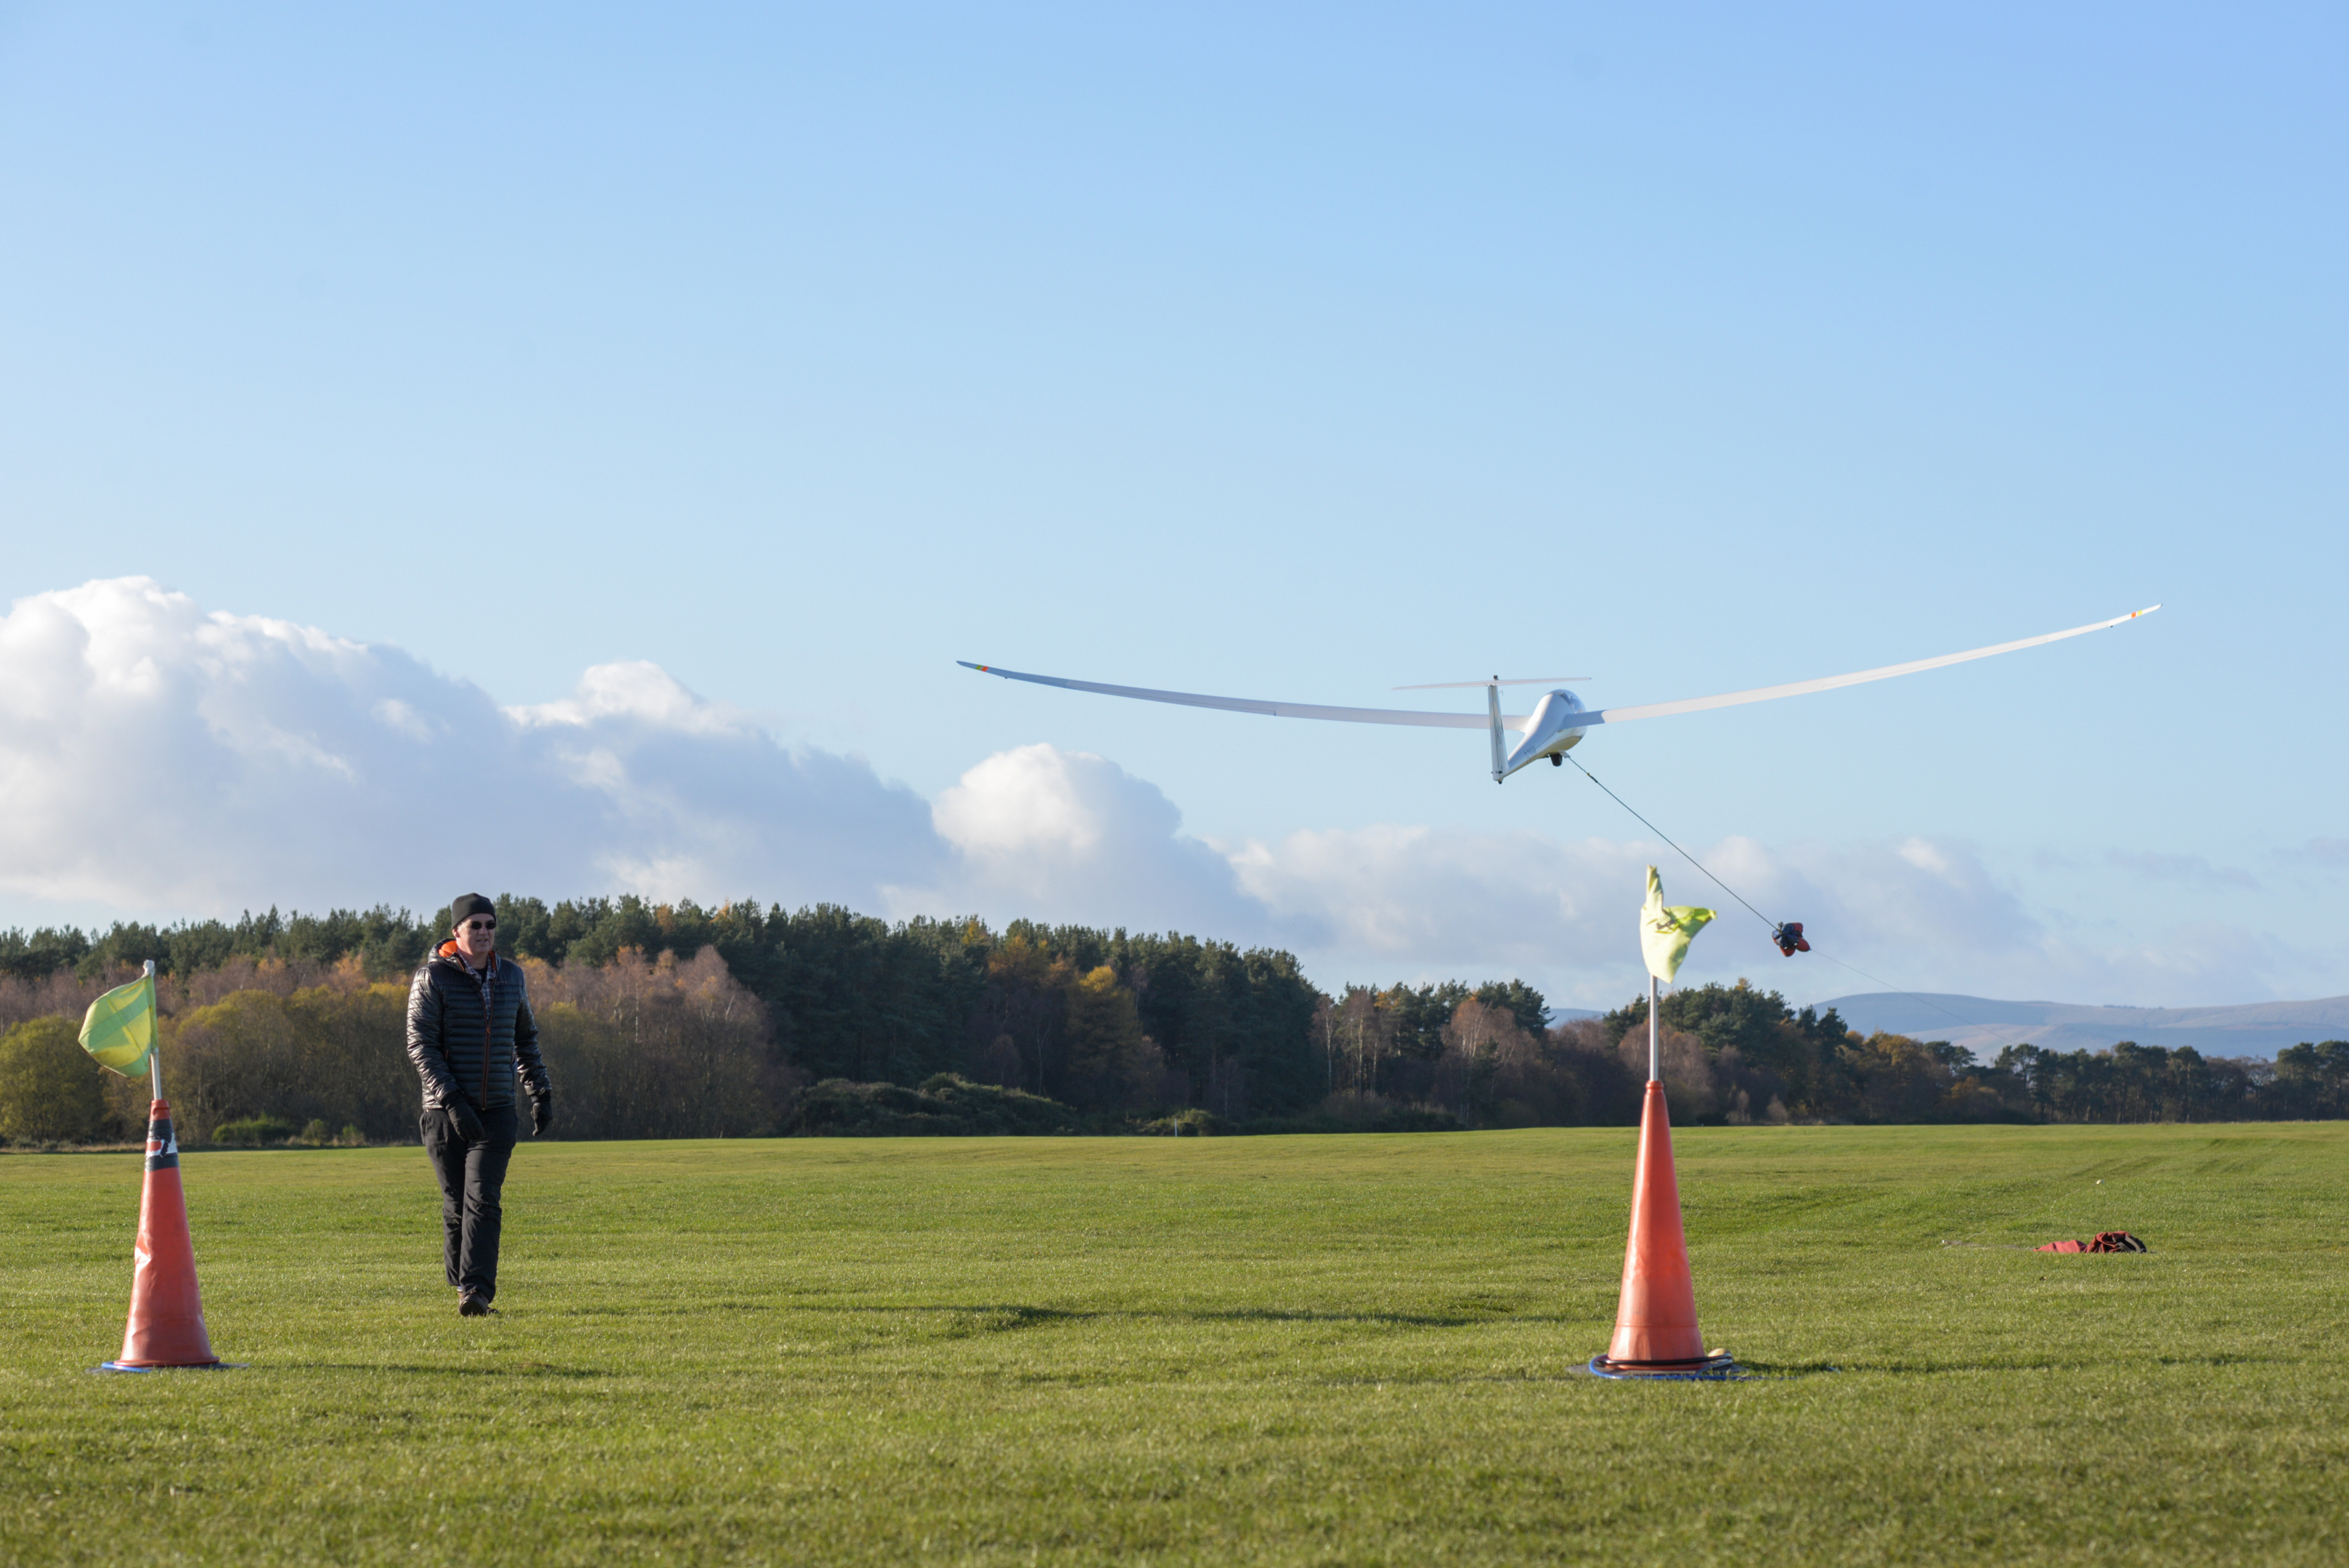 Stock image of a glider taking off at Portmoak Airfield.